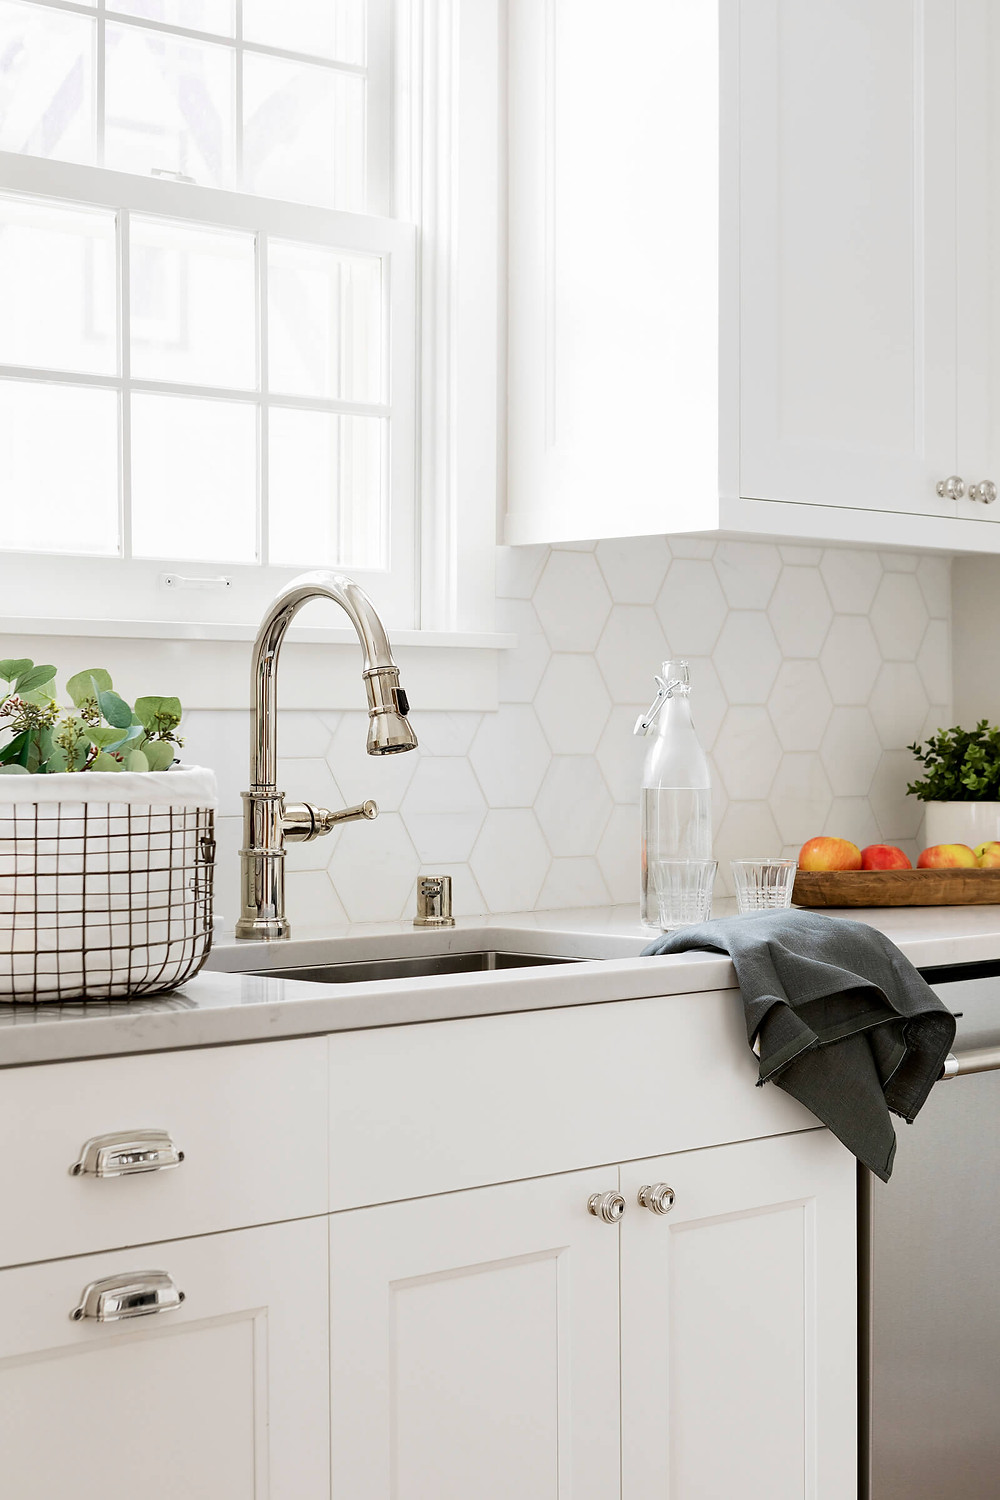 Kitchen remodel with white cabinetry, marble hexagon backsplash tiles, polished nickel finishes while sharing ways to live a sustainable lifestyle.